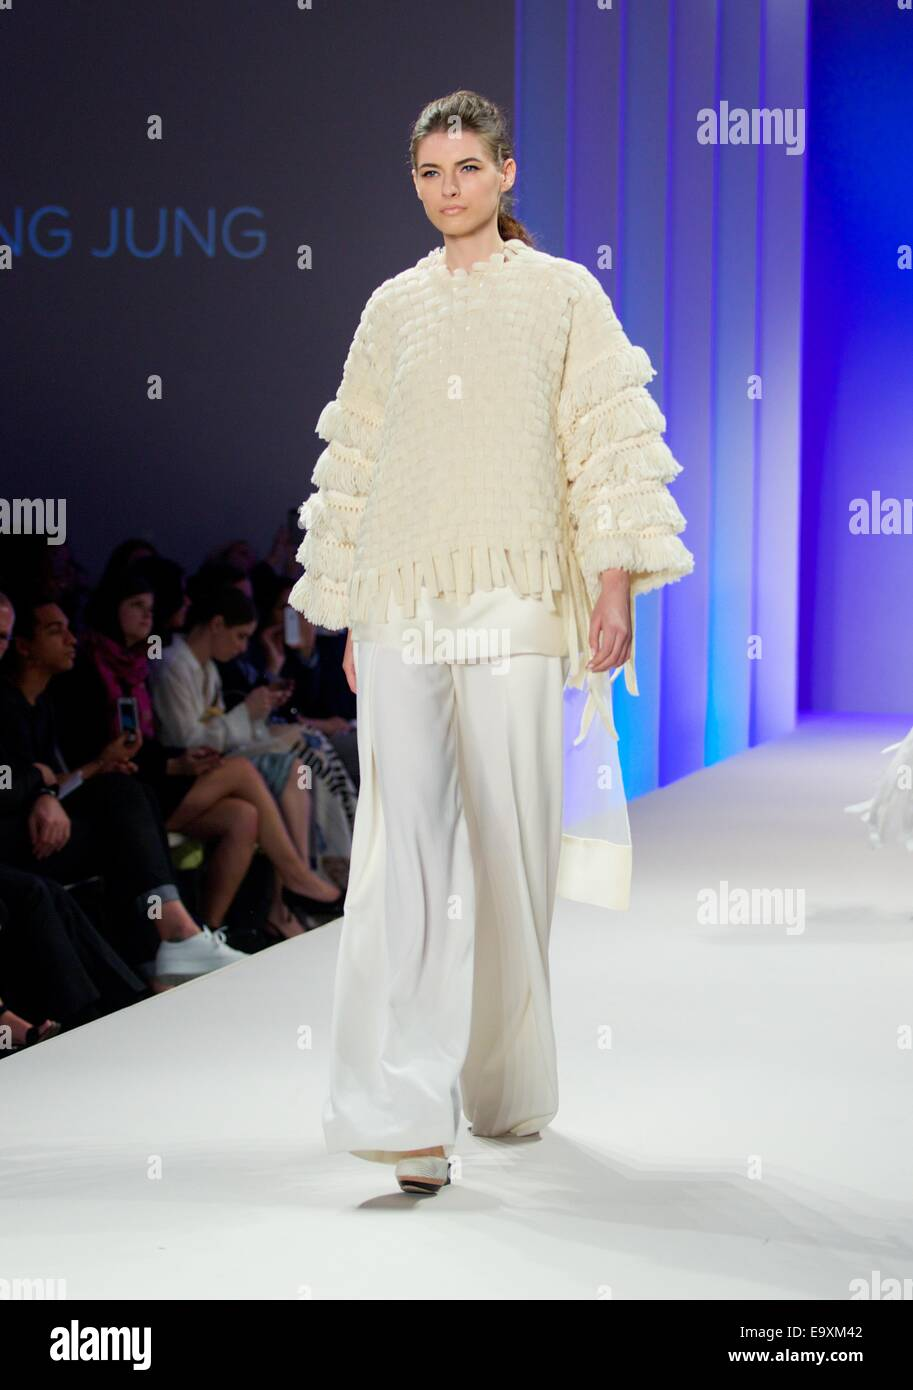 The Future Of Fashion The Fashion Institute Of Technology S Annual Stock Photo Alamy